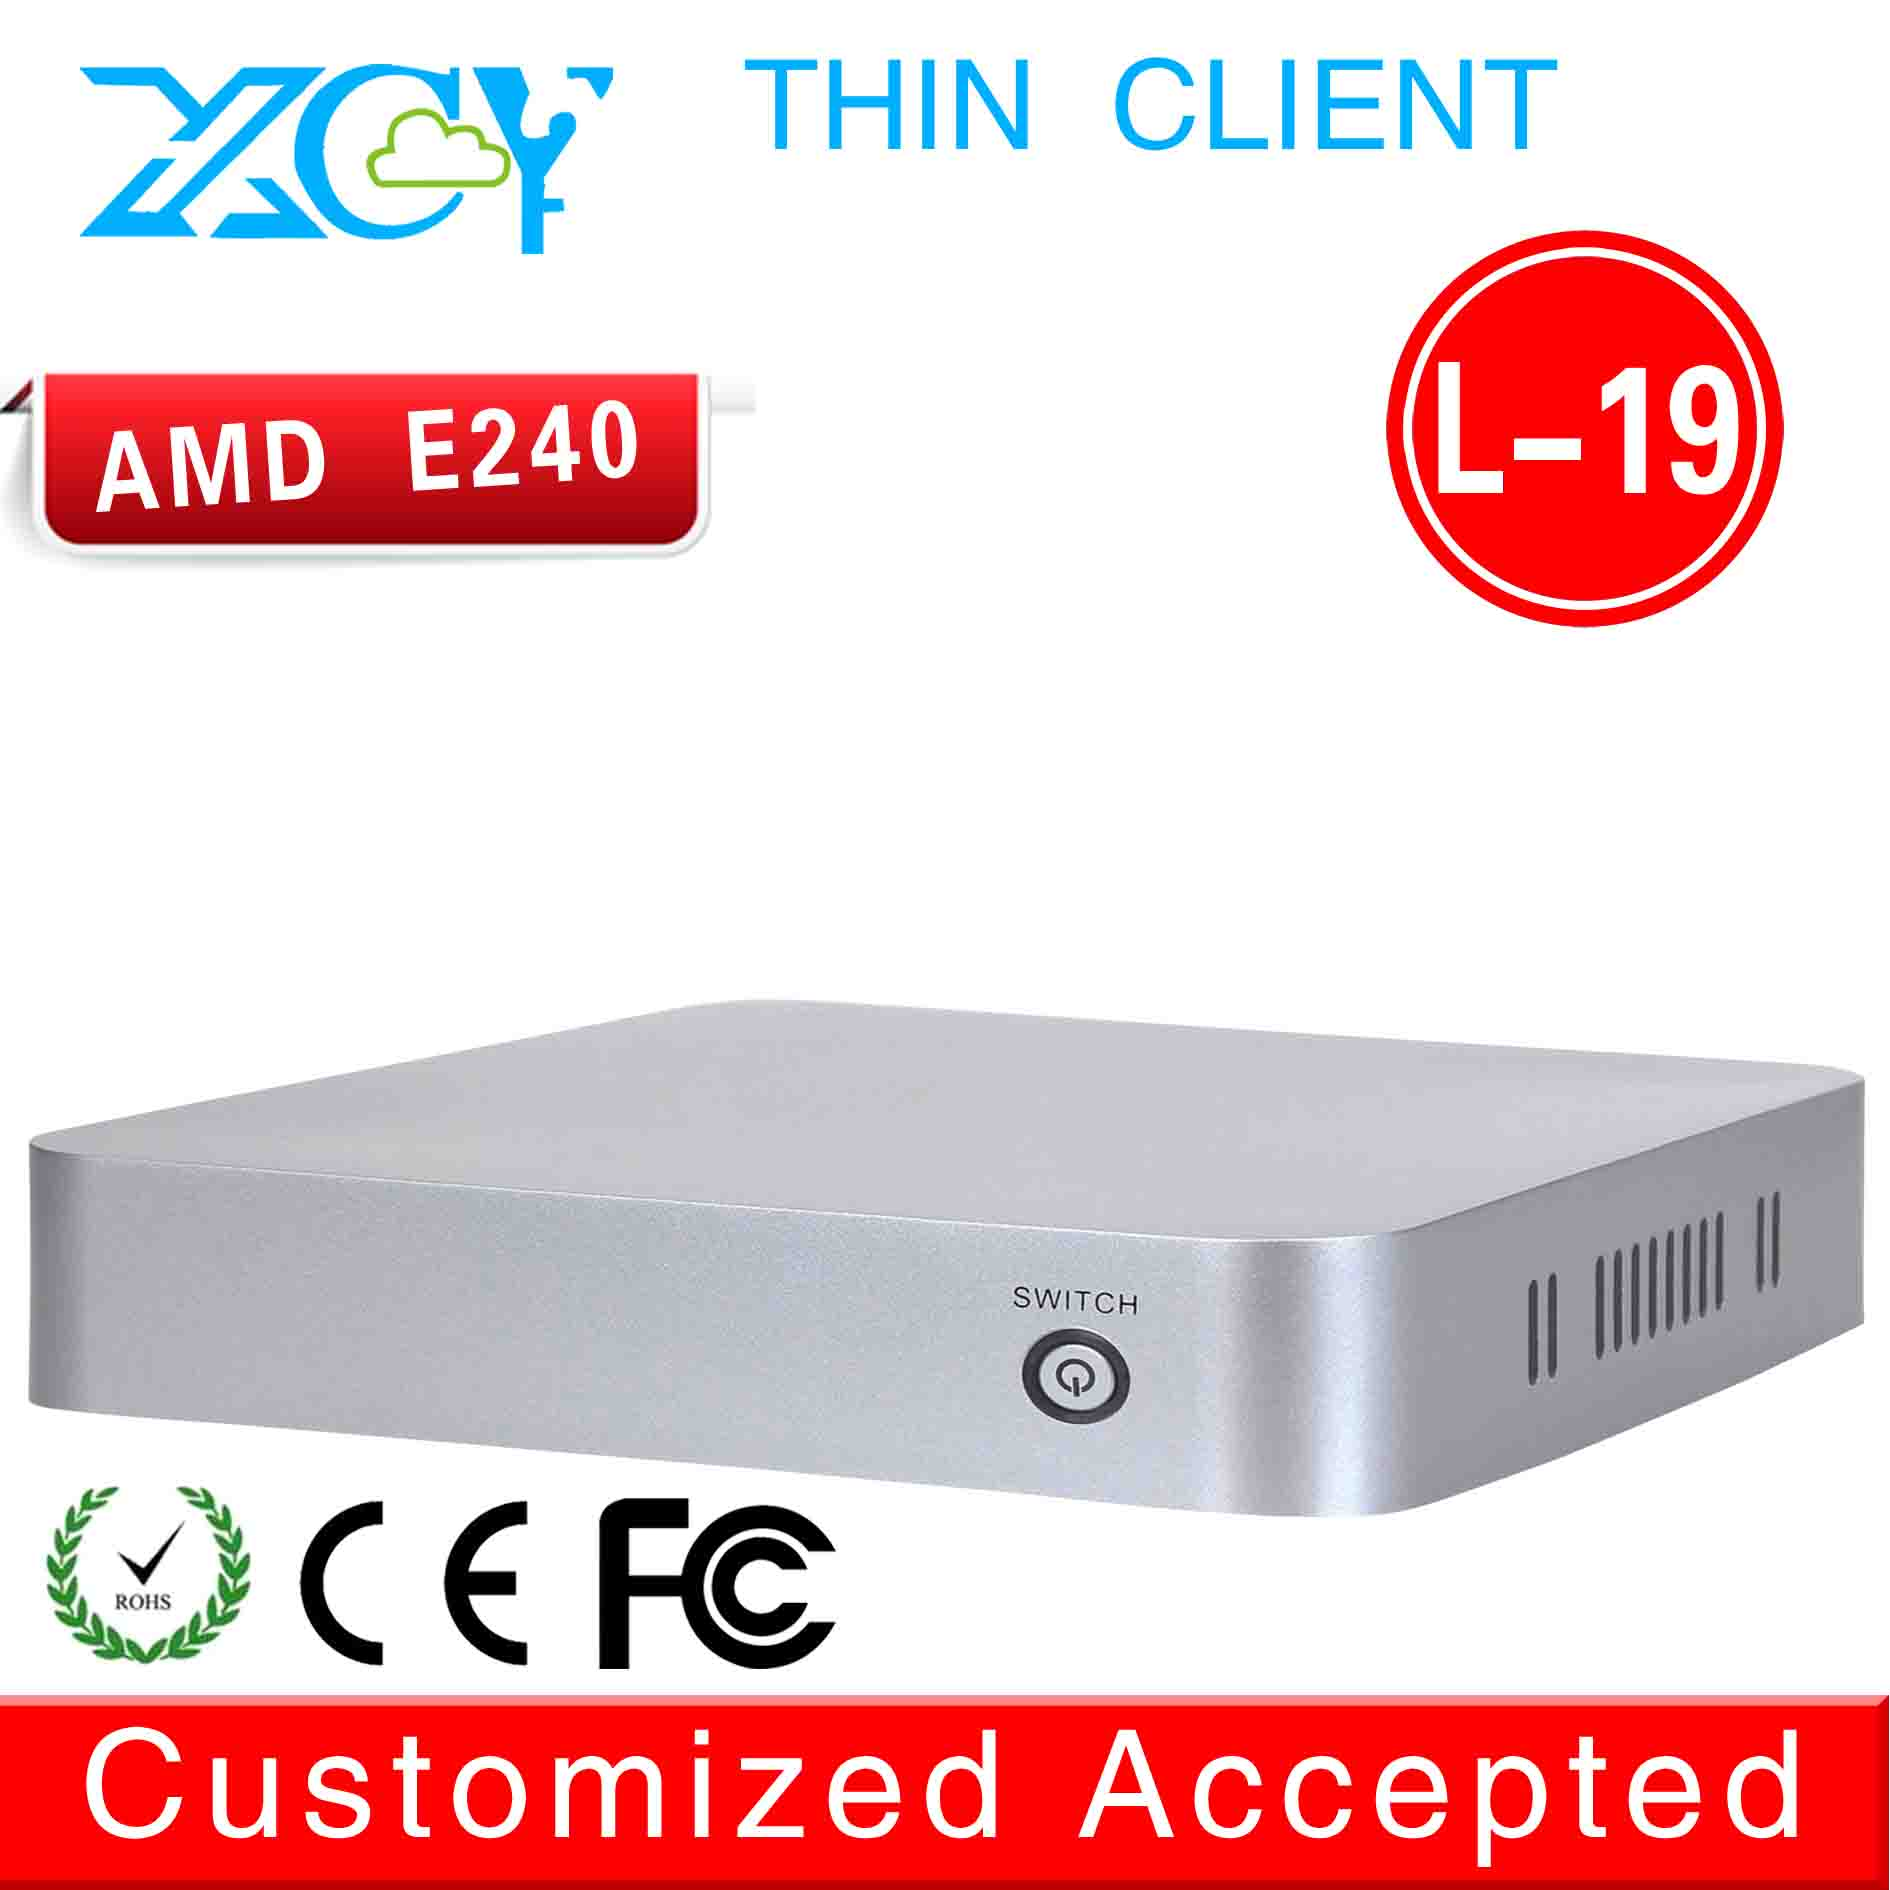 XCY HTPC Itx Case Mini Itx Case Mini Computer L-19 E240 1.5GHZ Support 3G and WiFi (LBOX-525) Promotional Price THIN CLIENT(China (Mainland))